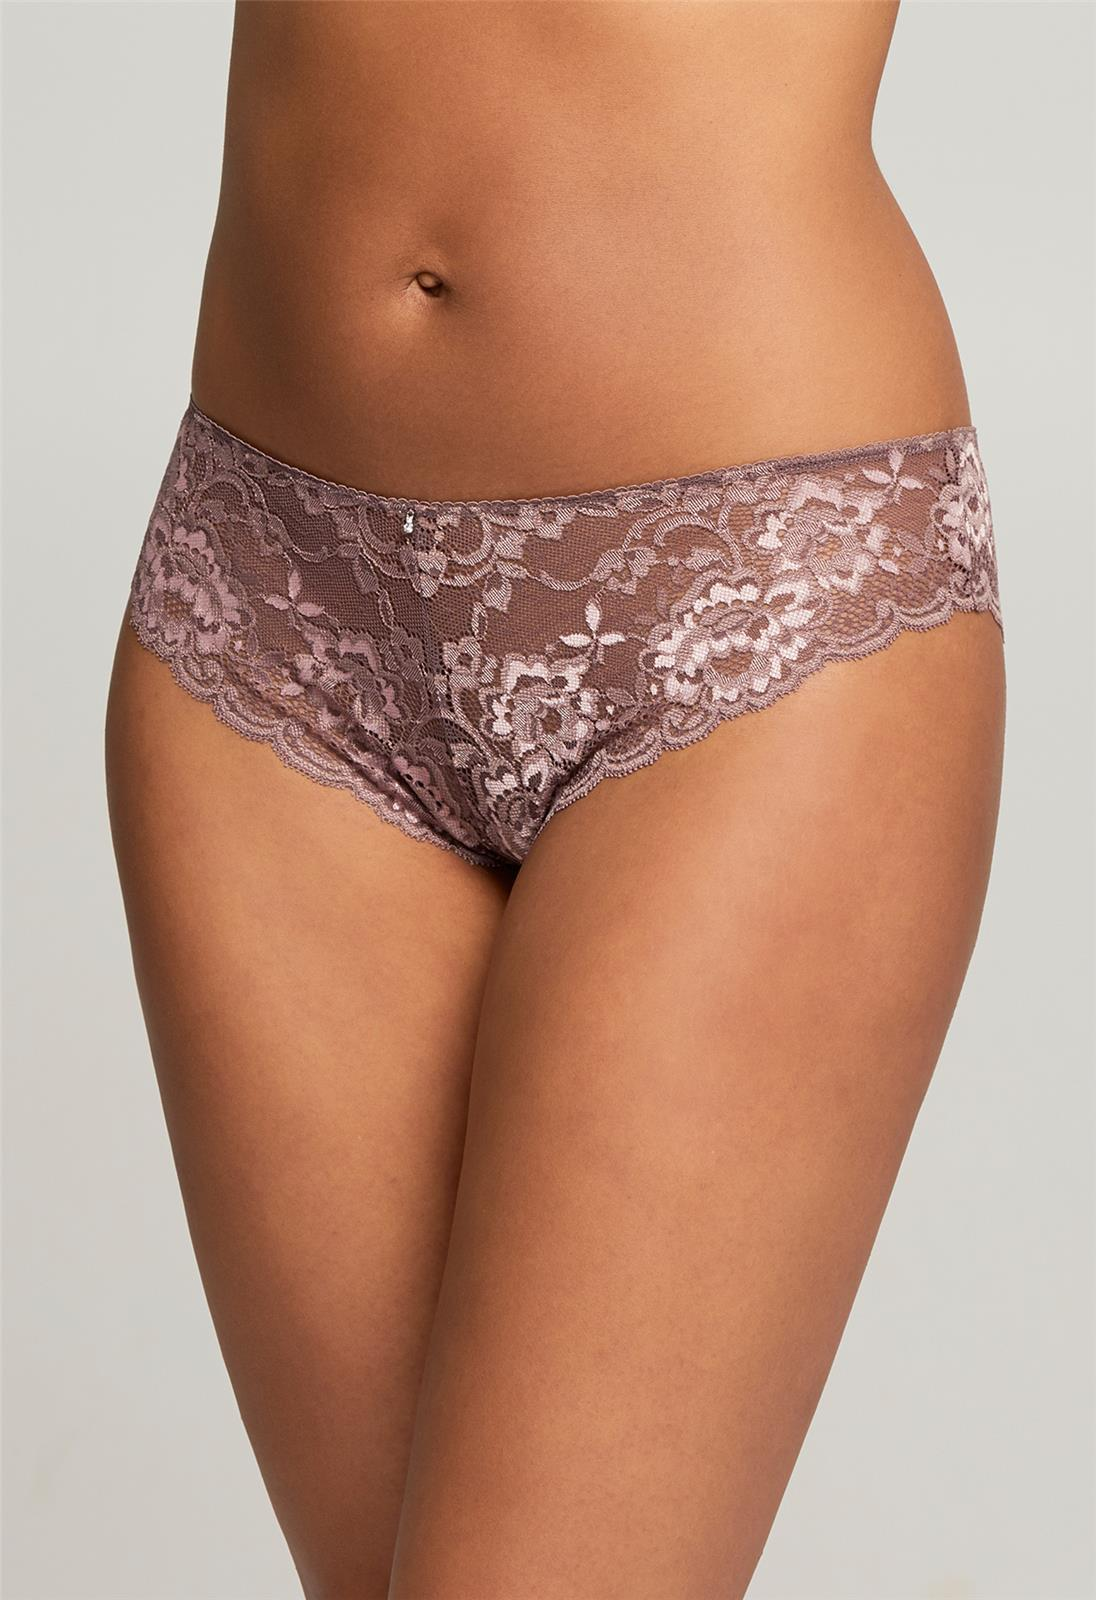 Montelle Intimates Brazilian Almond Spice Pink Pearl 9001